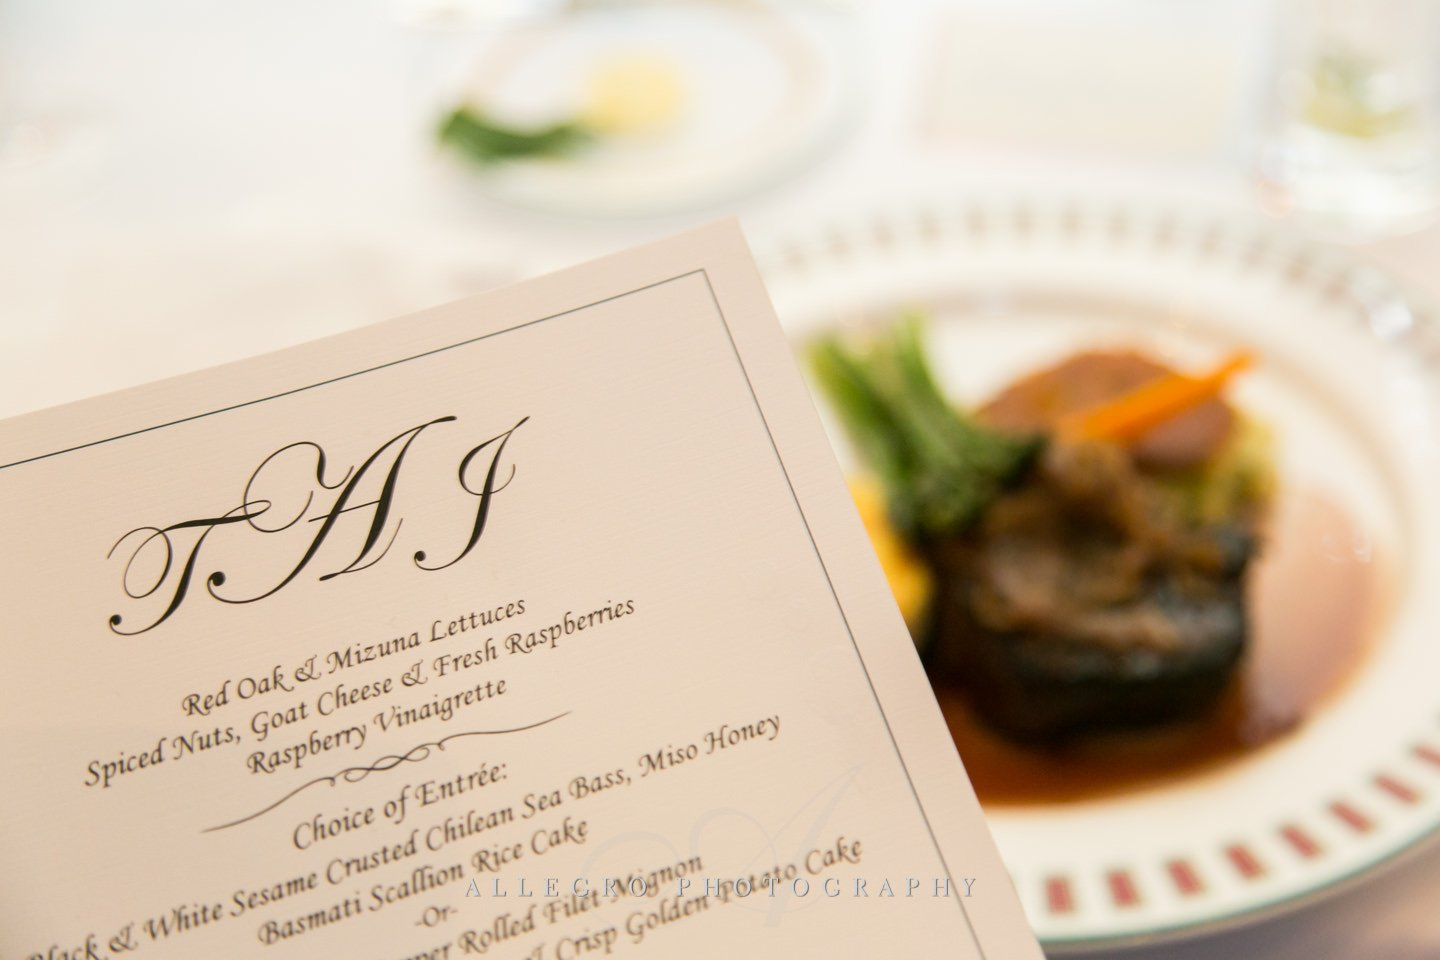 Menu with steak option- photo by allegro photography